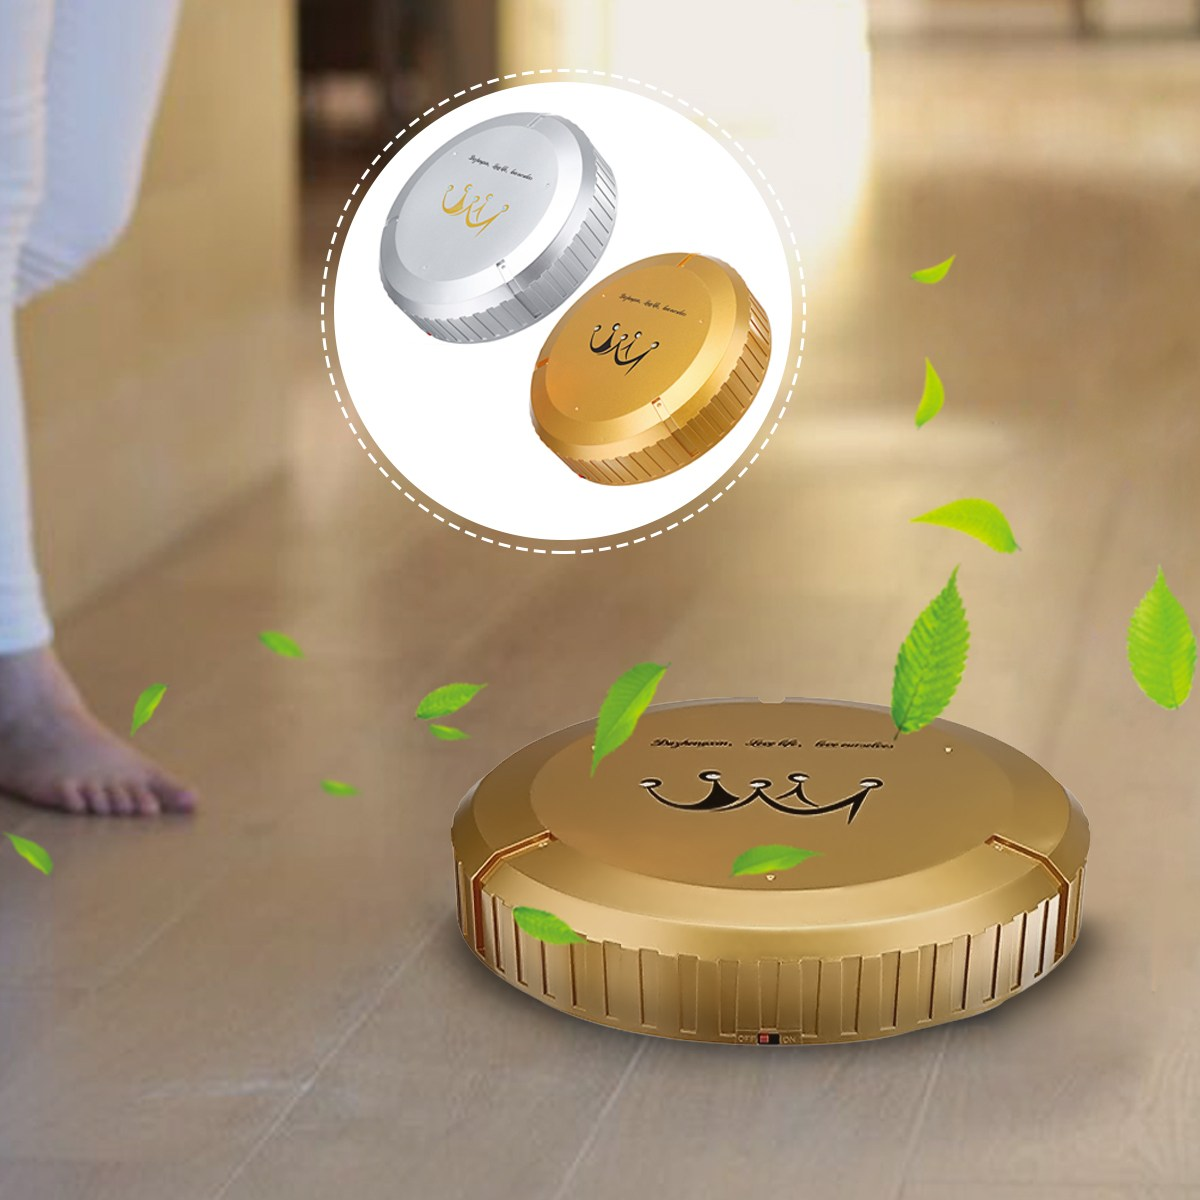 Gold&Silver home Automatic Smart Floor Clearner Cleaning Robot Mopping Sweeper Machine Household Appliances тарелка gold space home